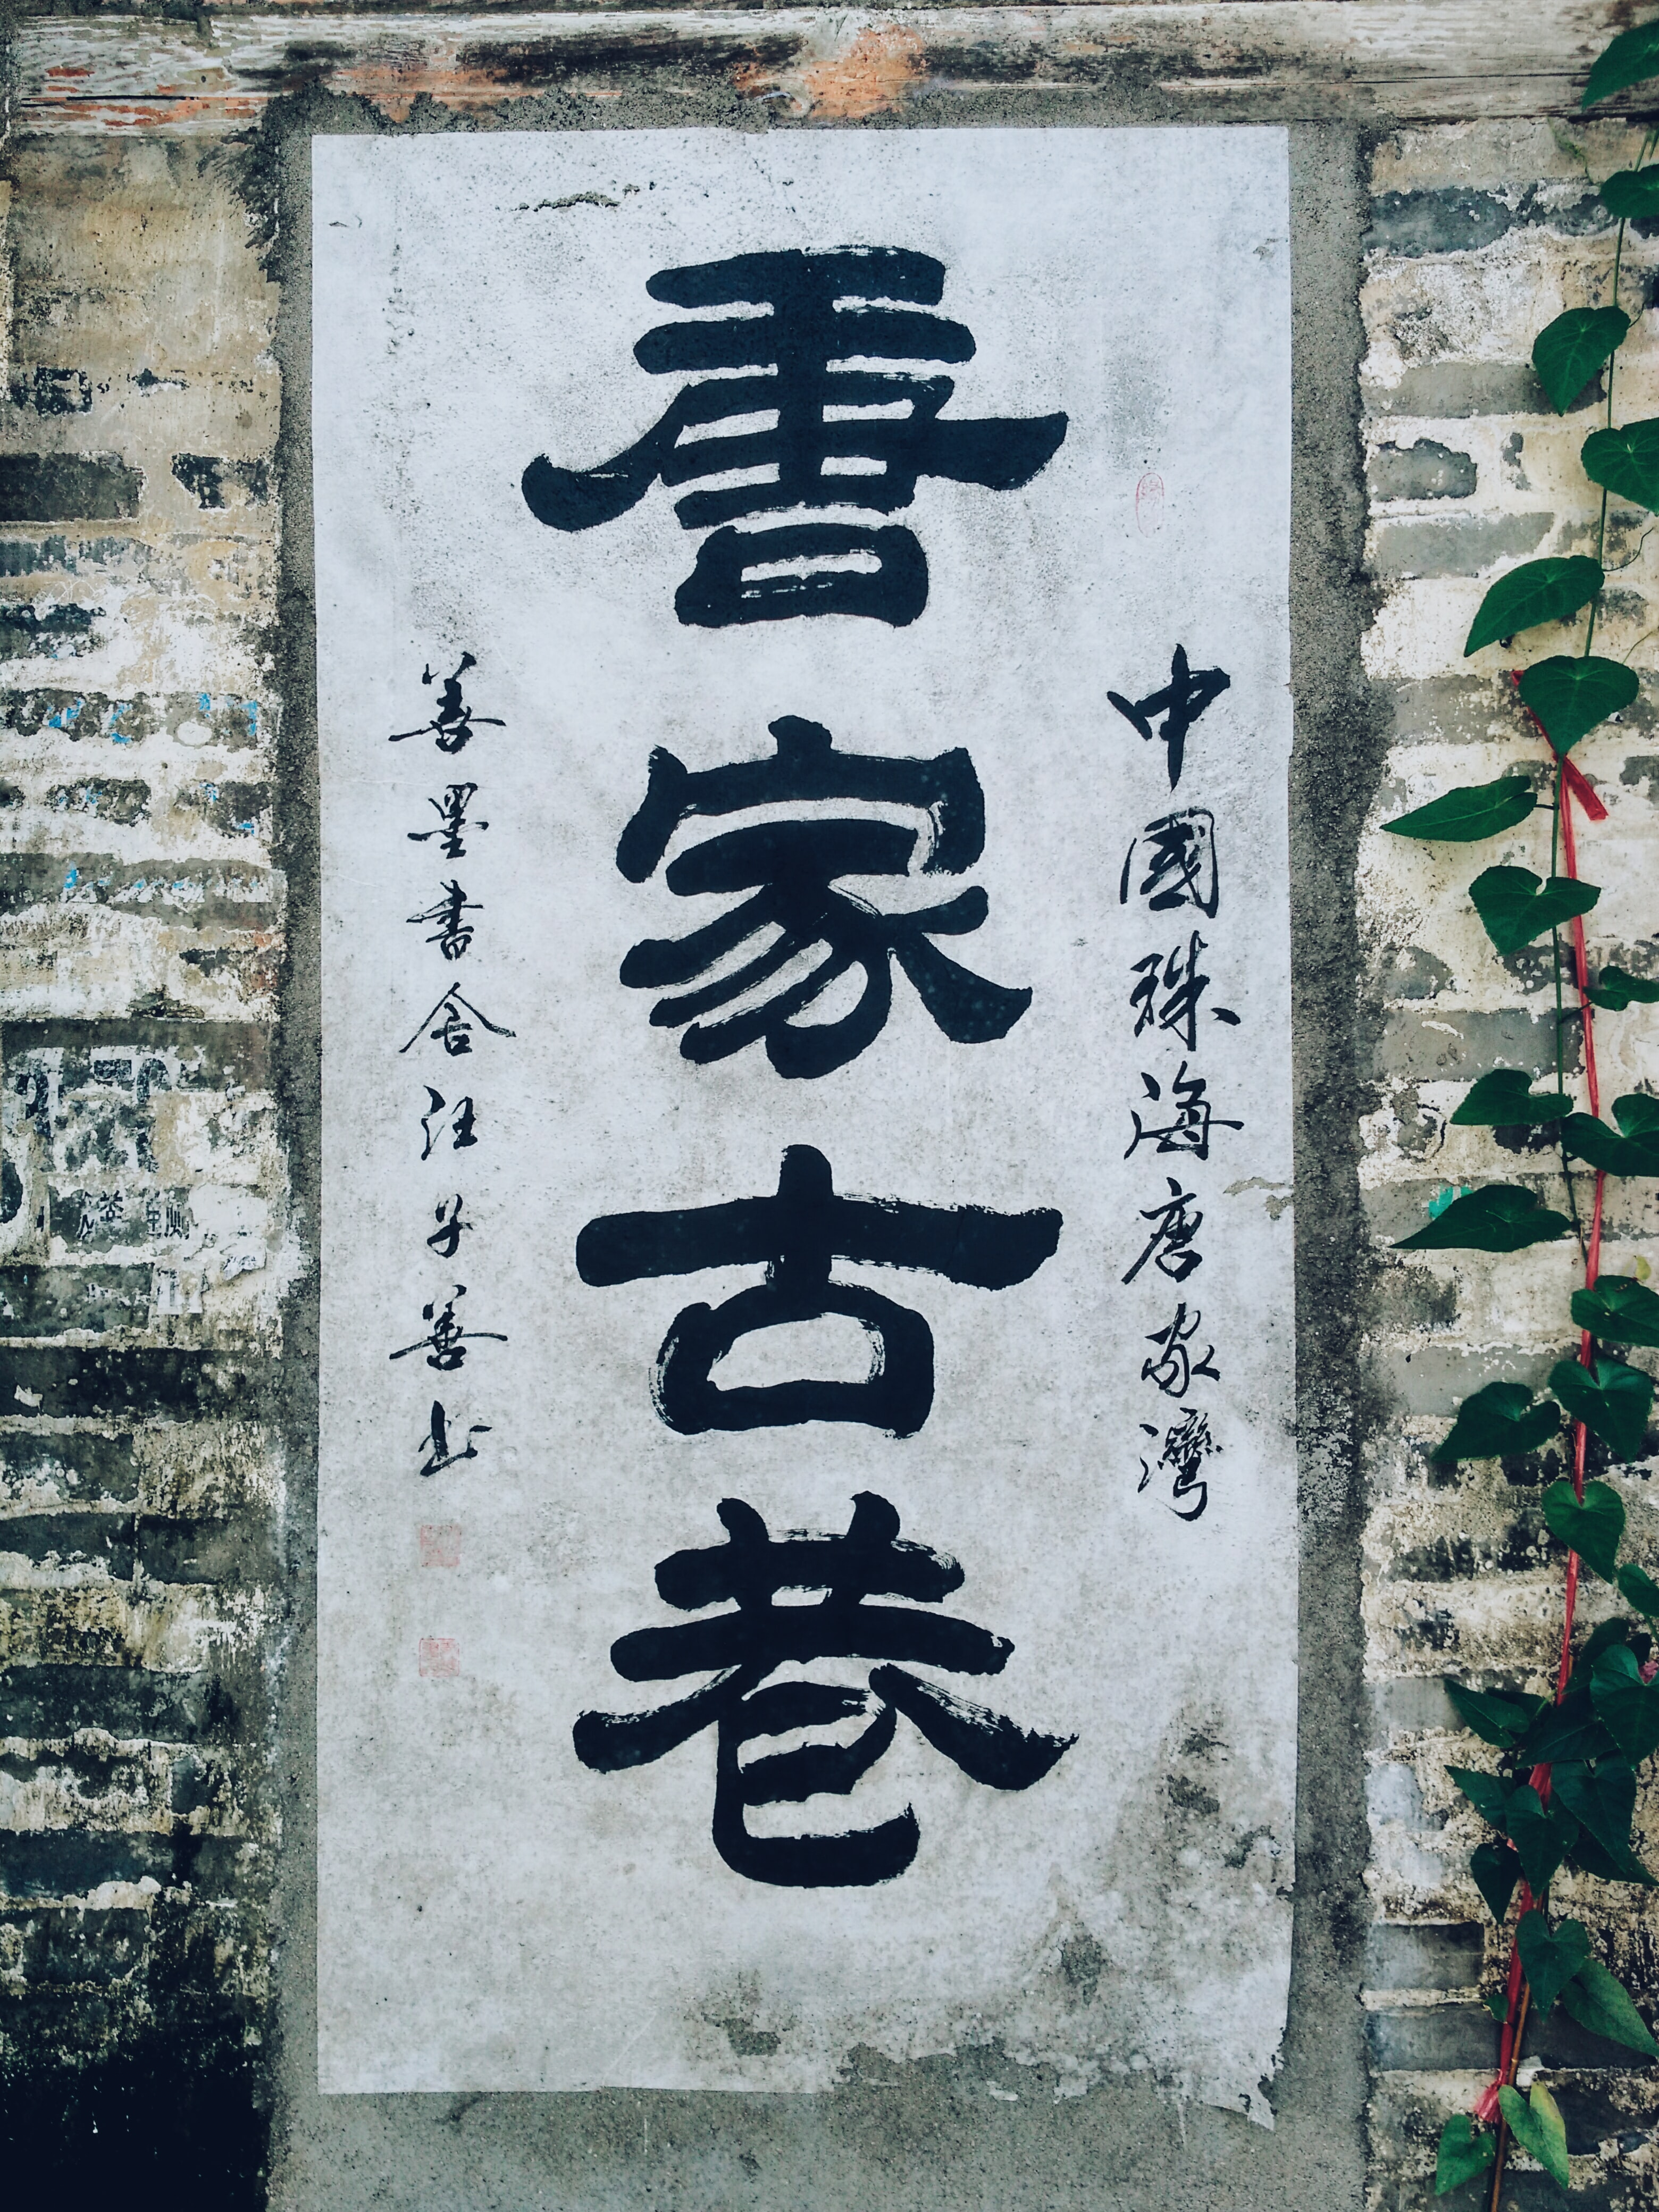 Black Chinese script on a white paper poster posted on a brick wall